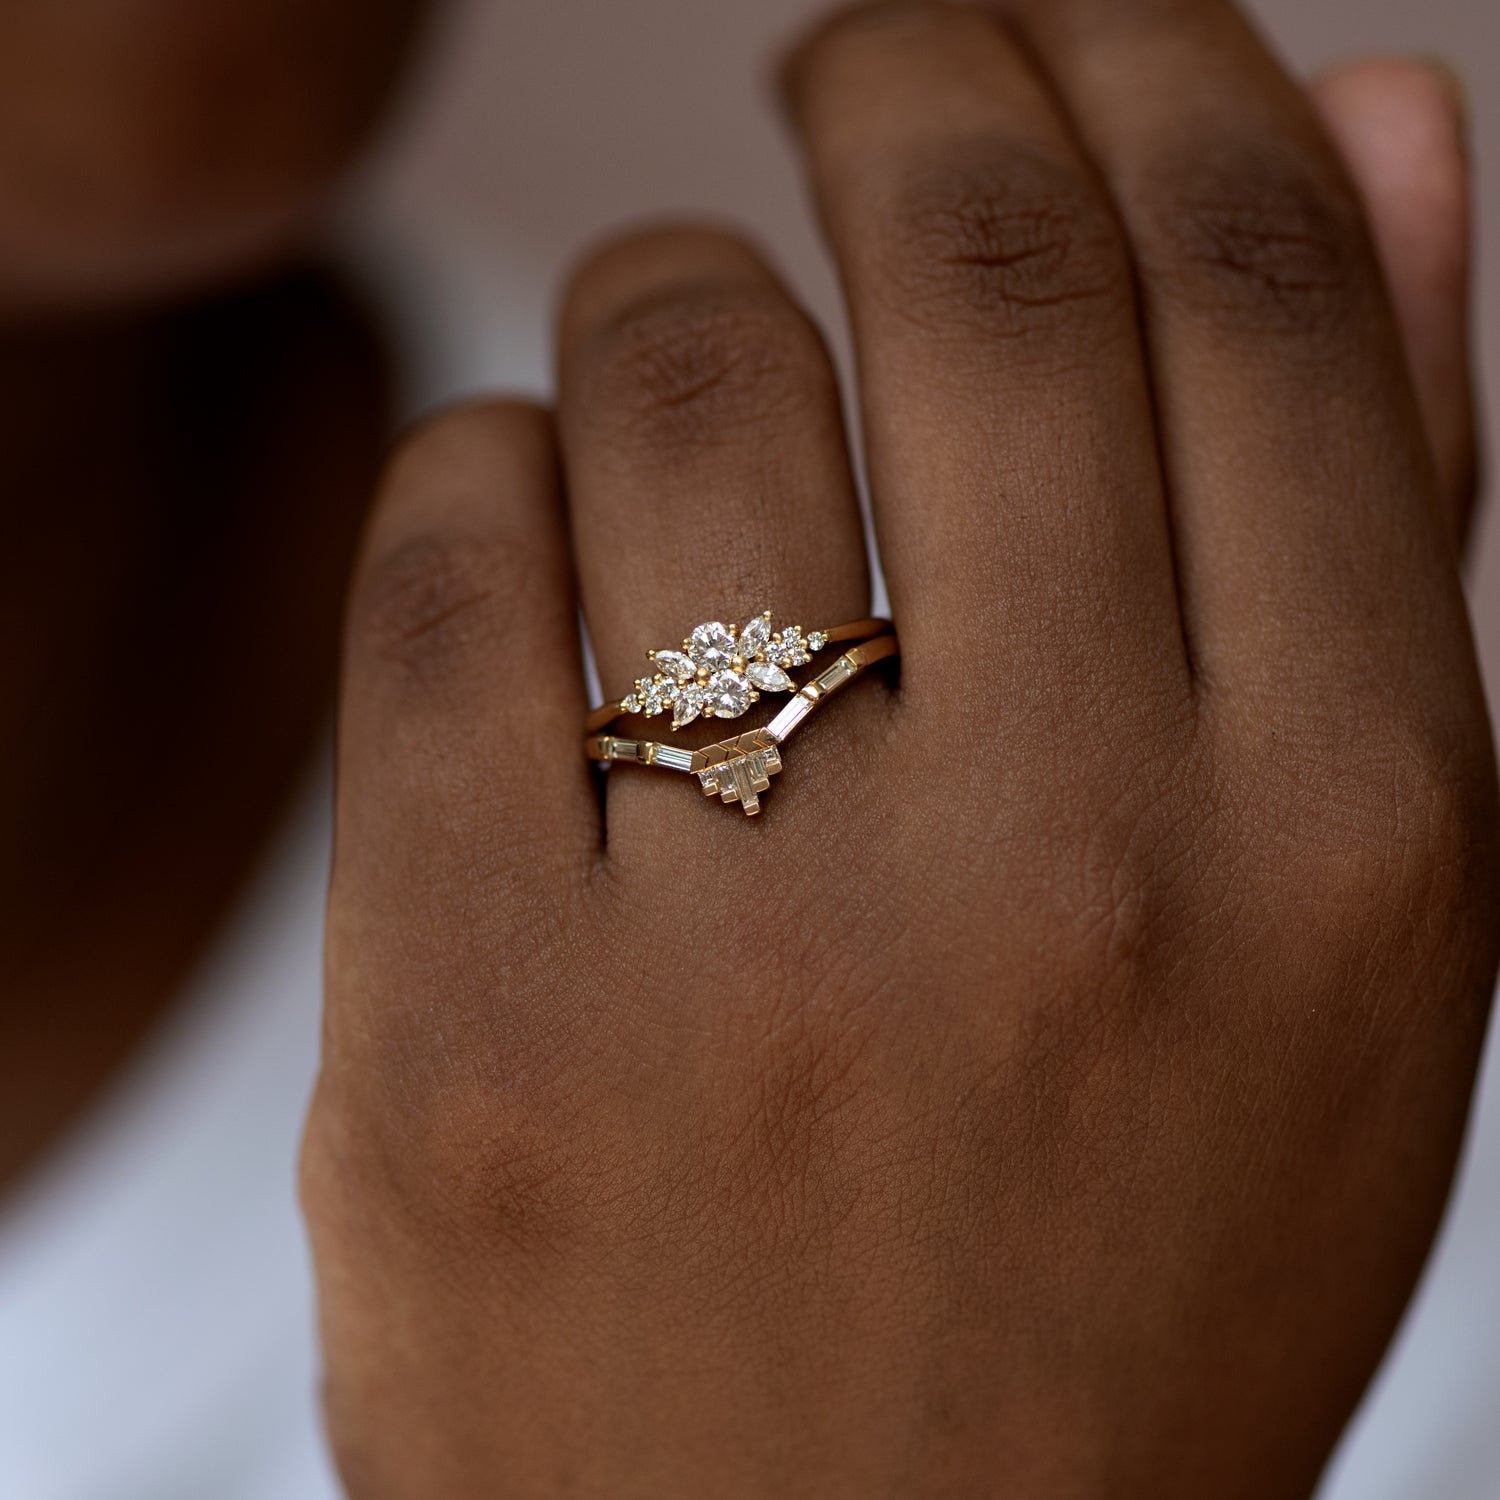 Engagement-Ring-with-a-Cluster-of-Diamonds-Small-Flora-Ring-Ring-in-set